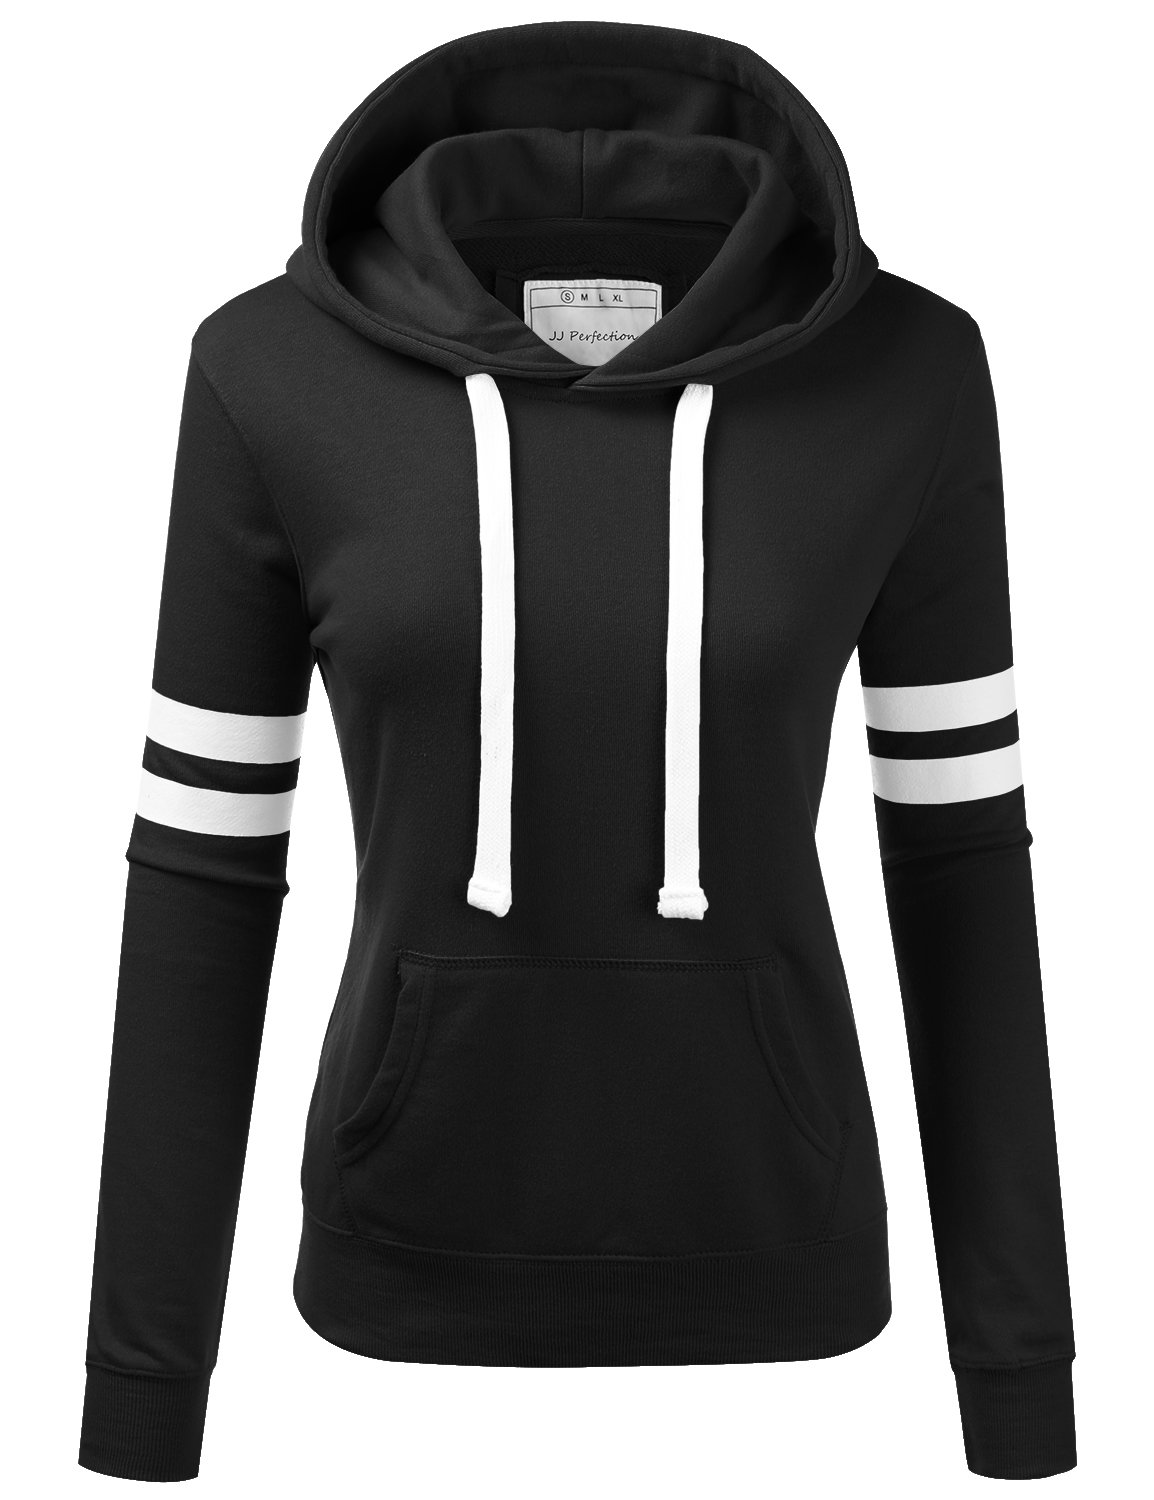 NINEXIS Womens Long Sleeve Terry Hoodie Double Arm Line Pullover Sweatshirts Black L